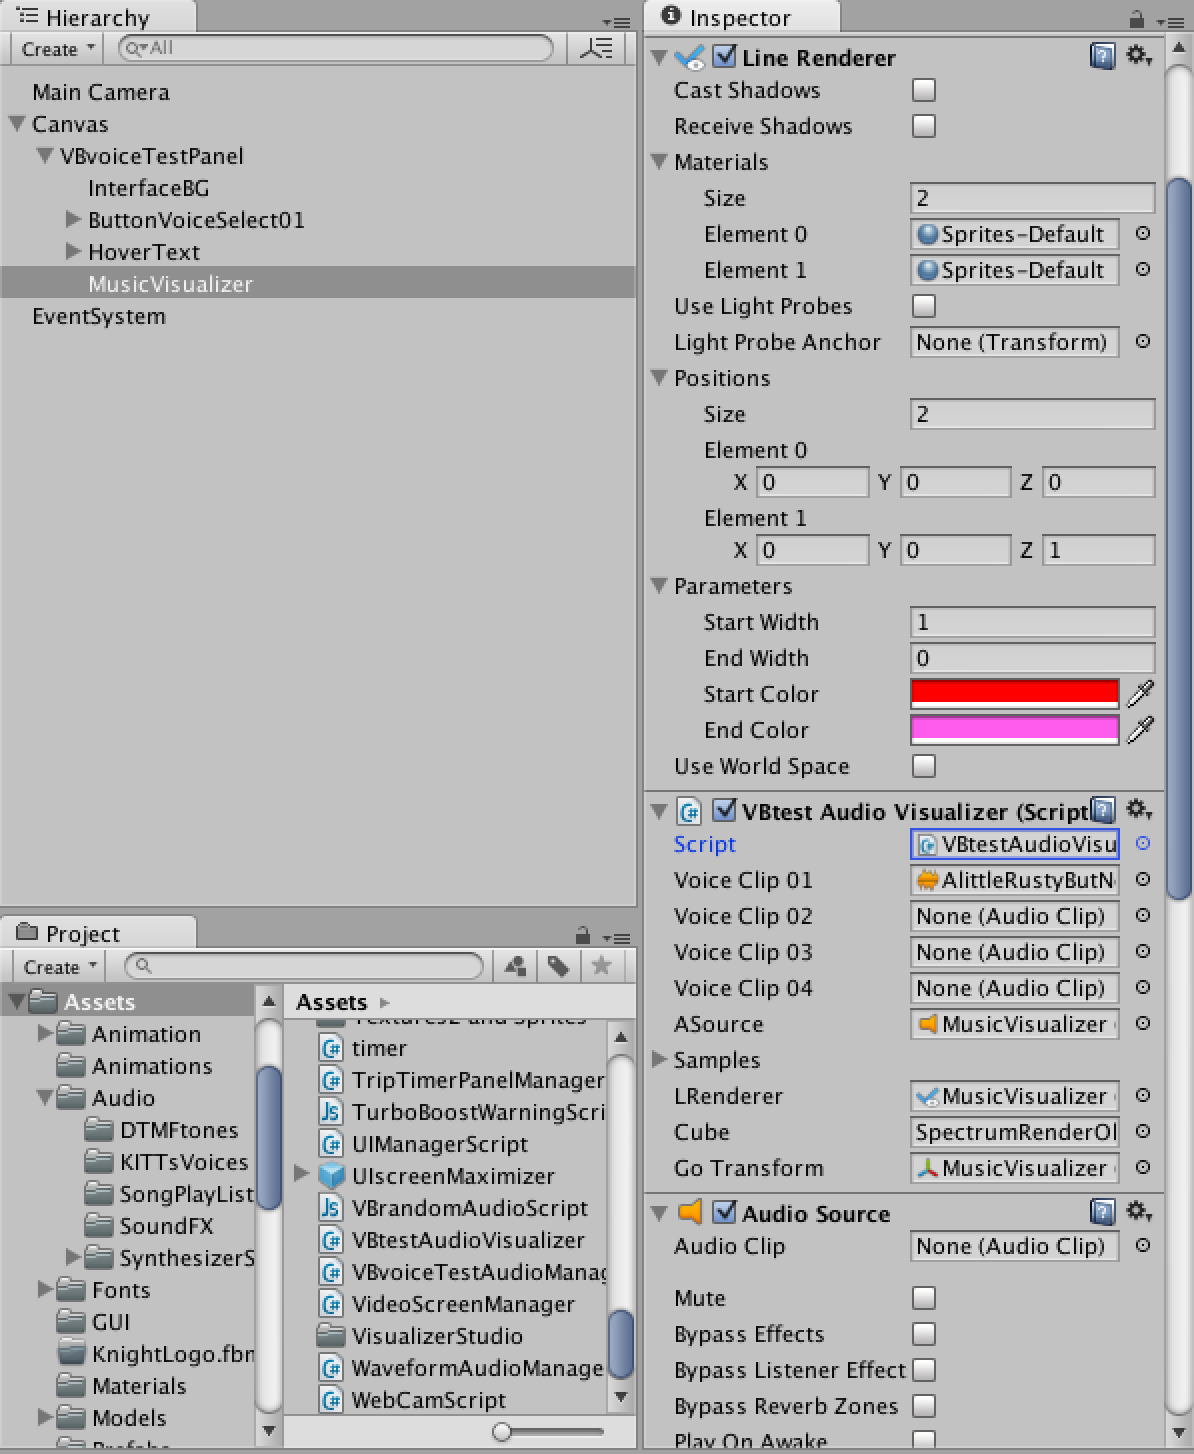 Line Renderer Music Visualizer Not Working - Unity Answers